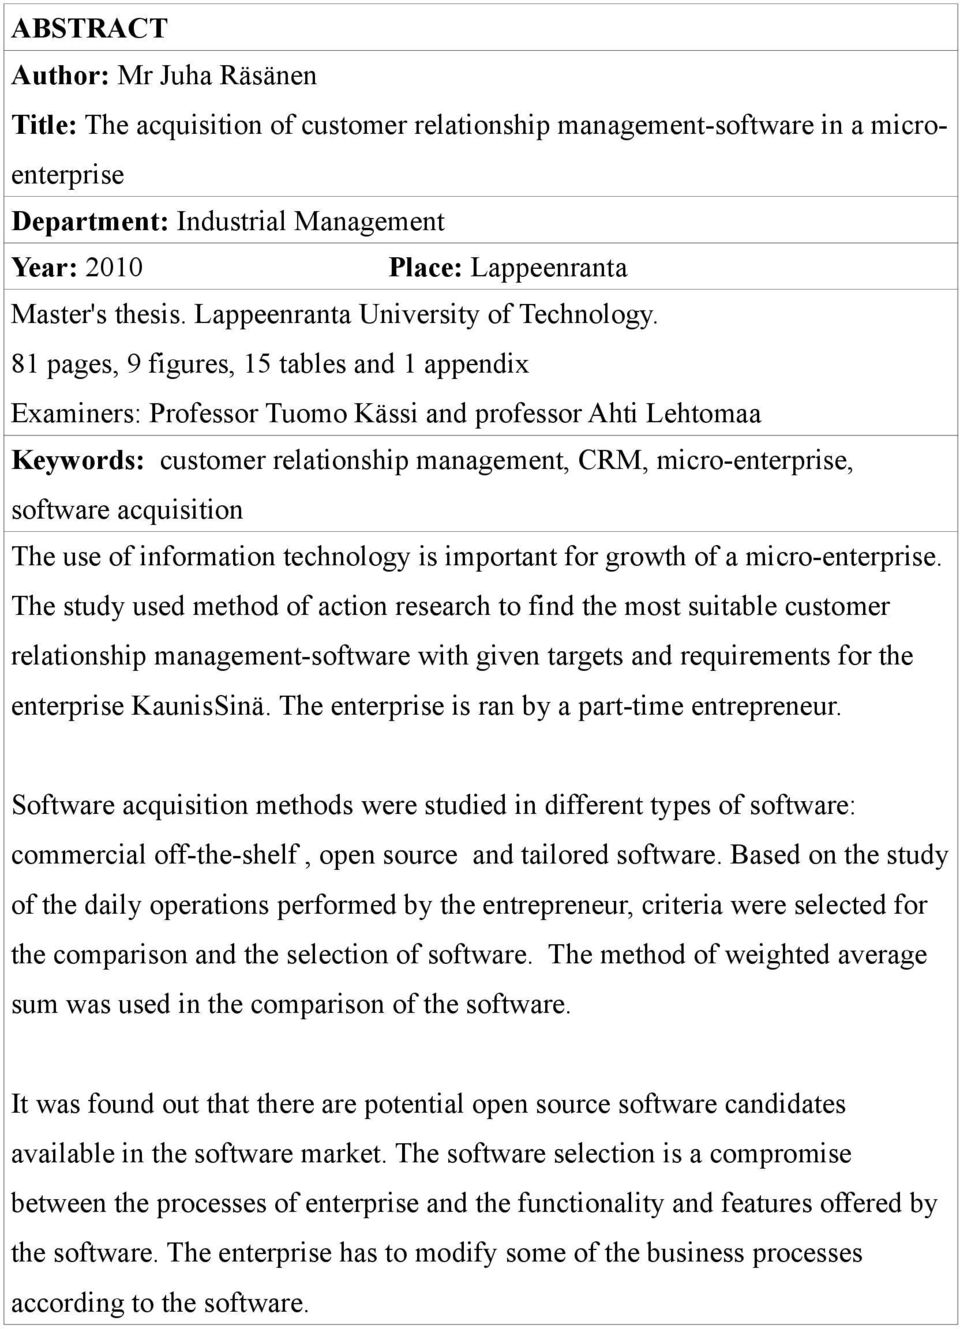 81 pages, 9 figures, 15 tables and 1 appendix Examiners: Professor Tuomo Kässi and professor Ahti Lehtomaa Keywords: customer relationship management, CRM, micro-enterprise, software acquisition The